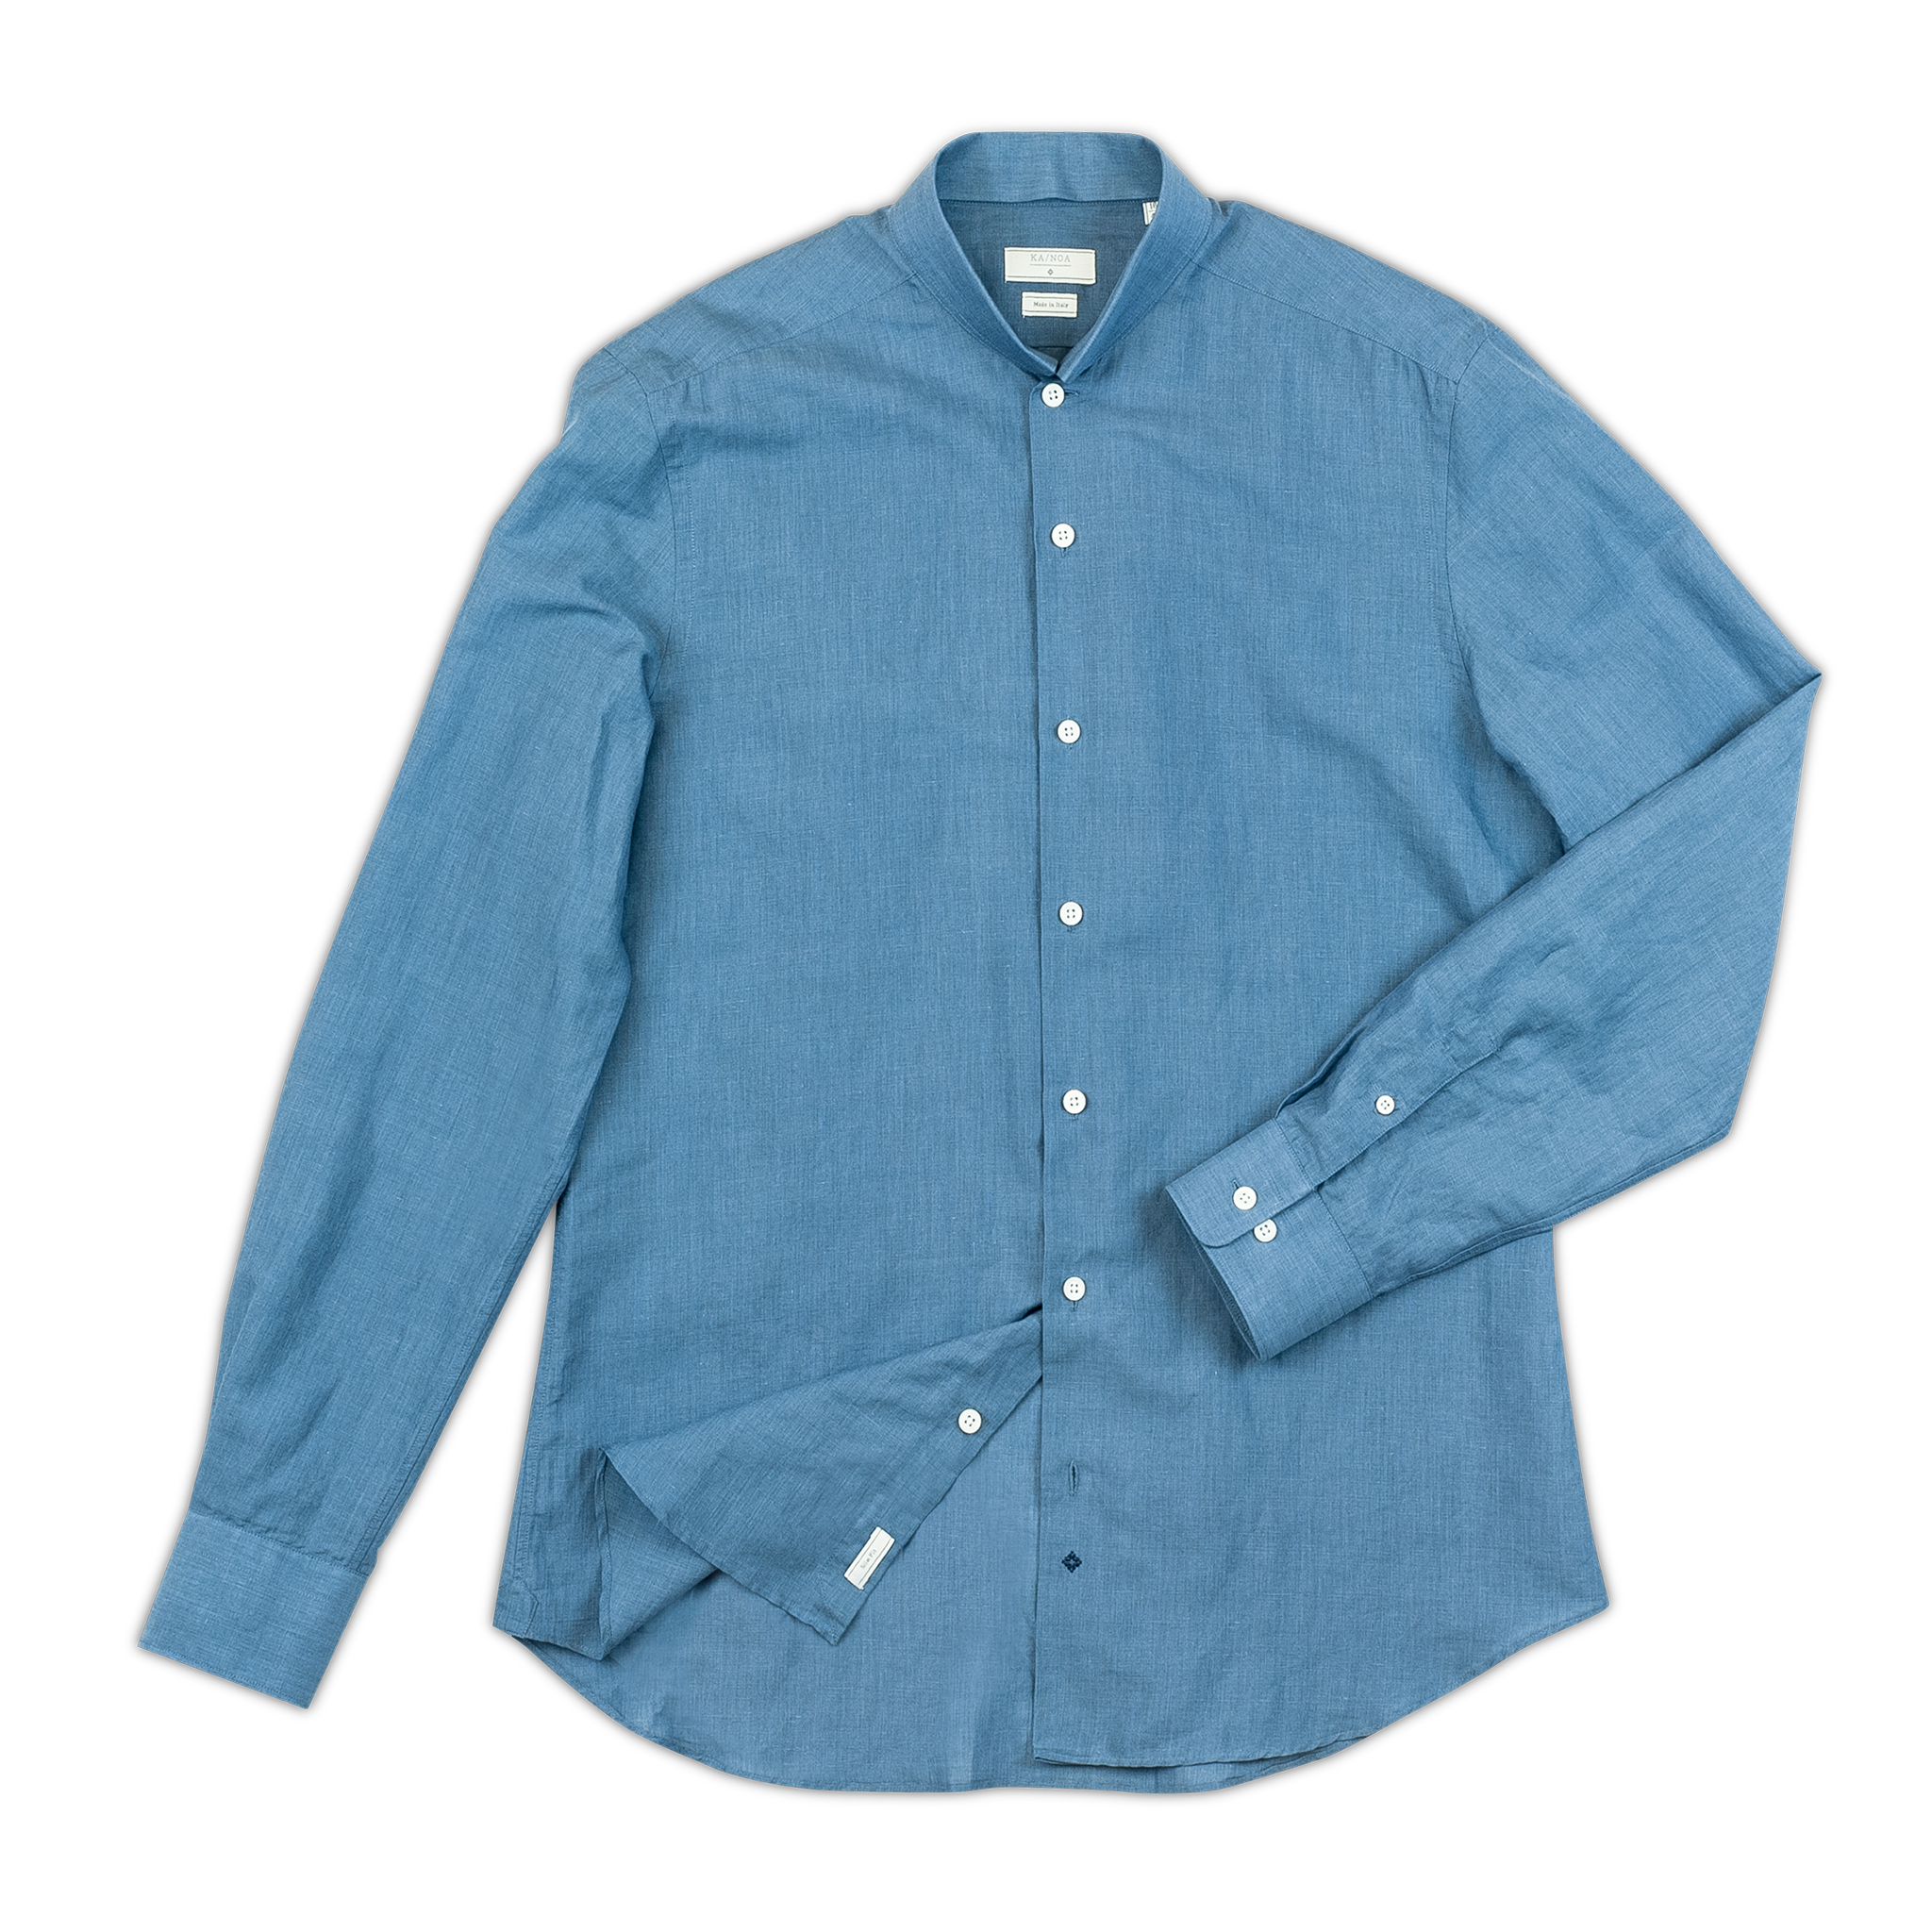 Conrad long-sleeved shirt in light voile linen (sugar paper)